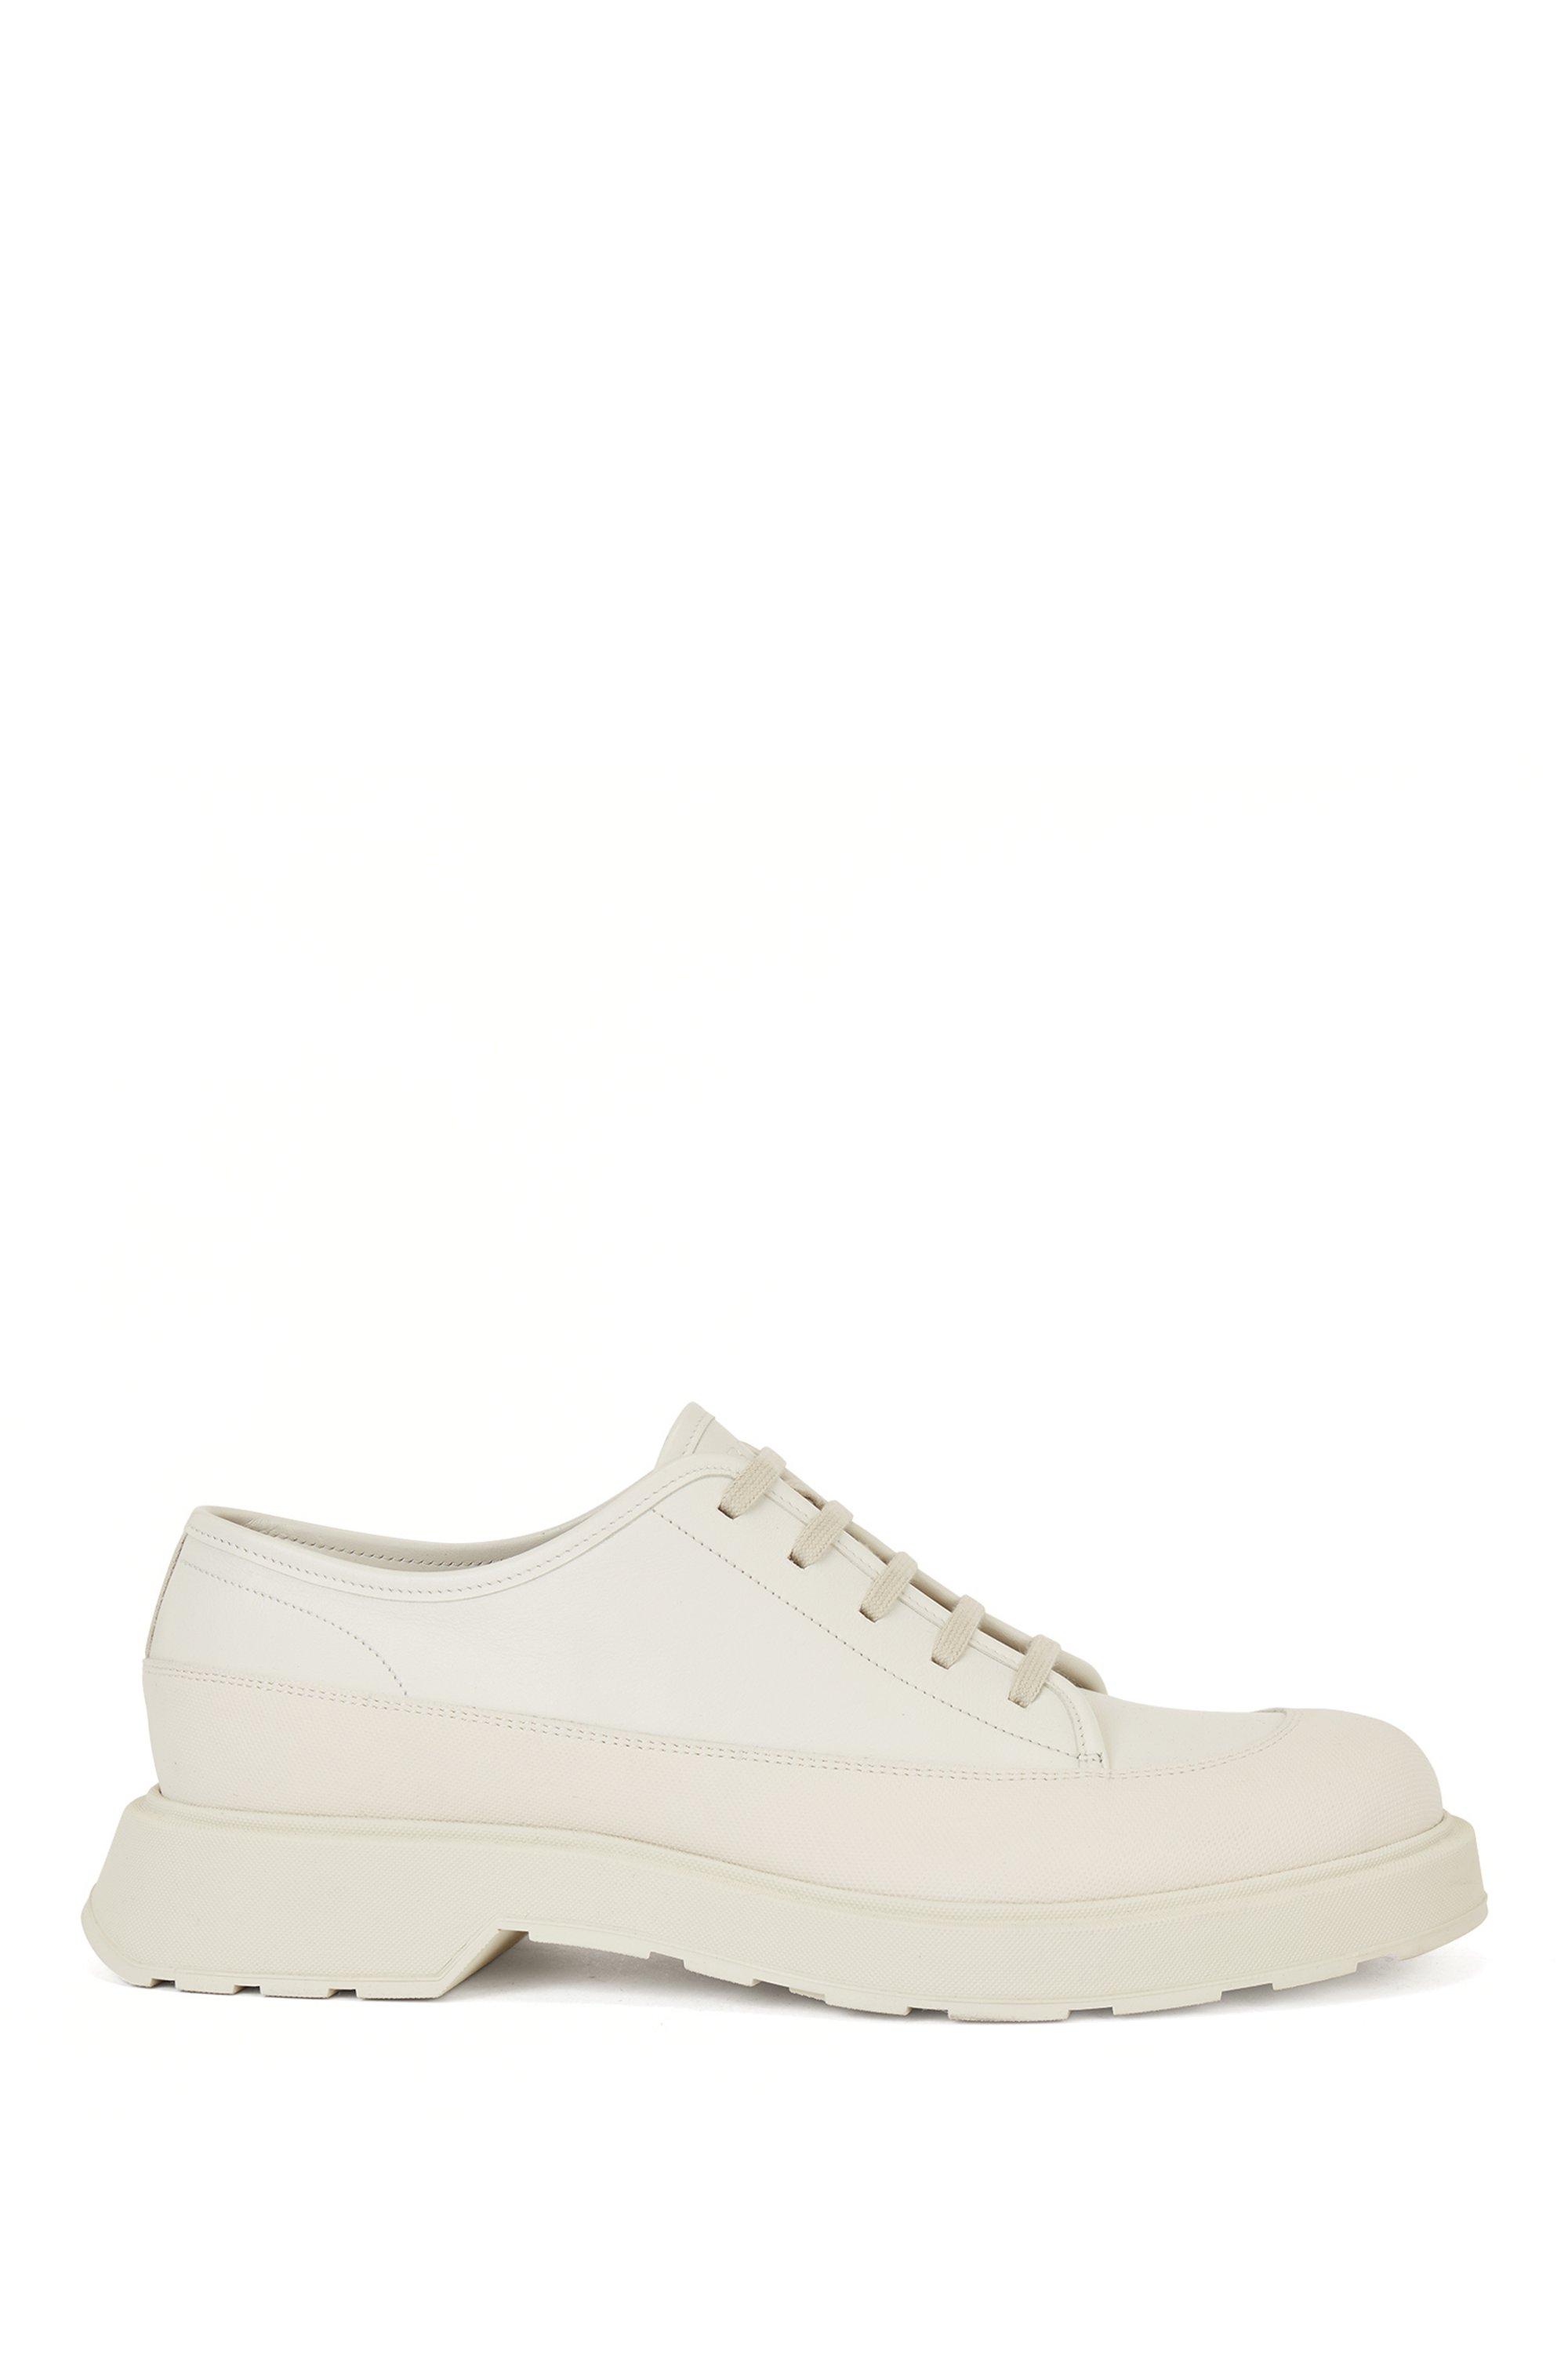 Hybrid Derby shoes in calf leather with lug sole, White